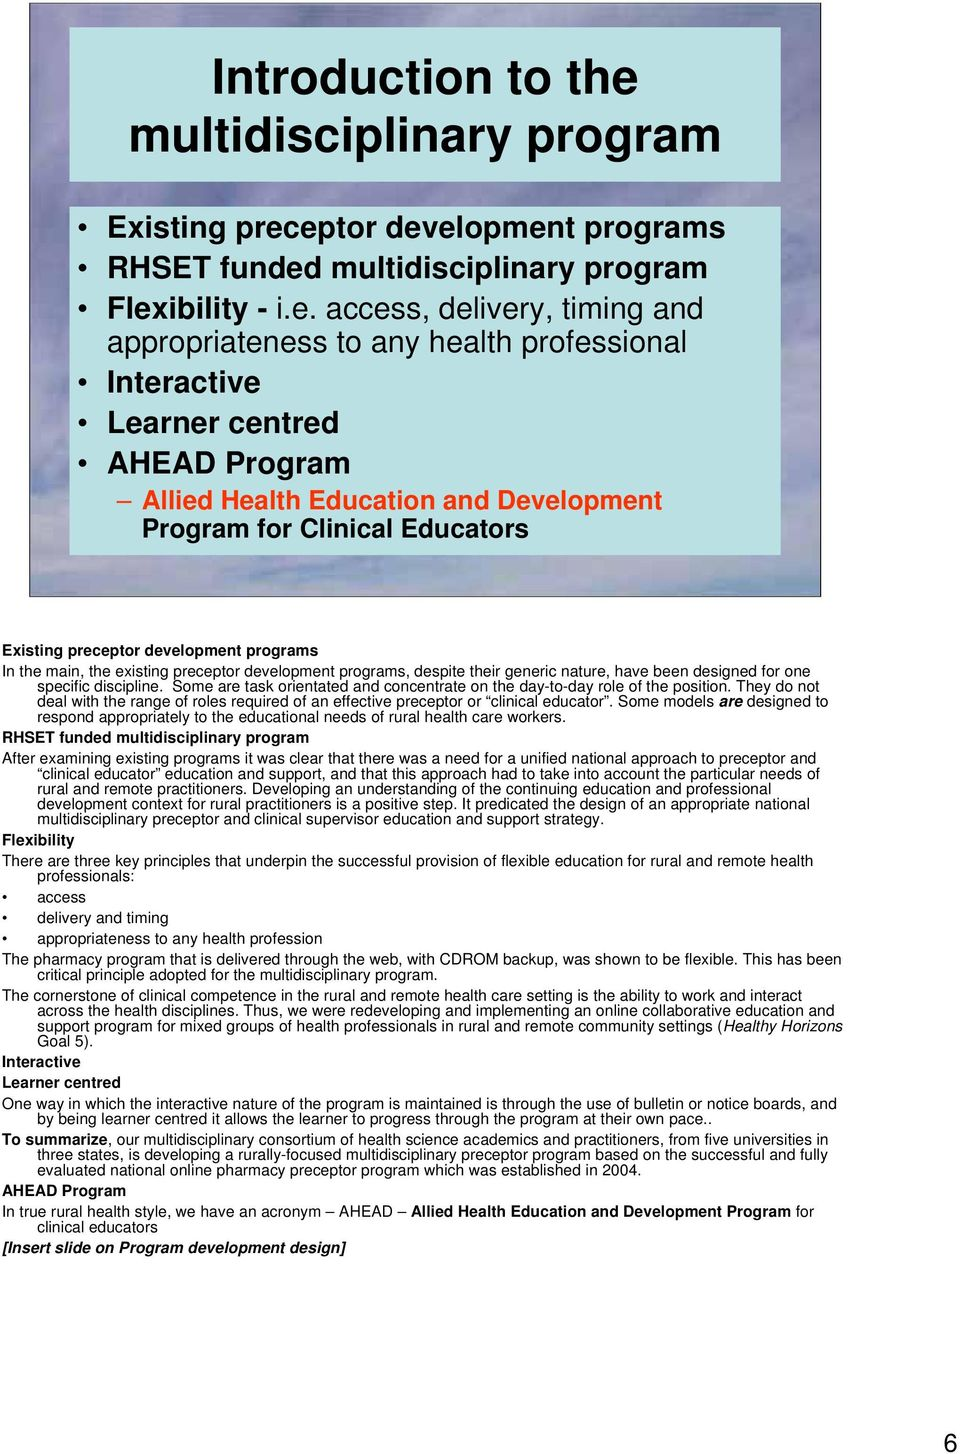 eptor development programs RHSET funded multidisciplinary program Flexibility - i.e. access, delivery, timing and appropriateness to any health professional Interactive Learner centred AHEAD Program